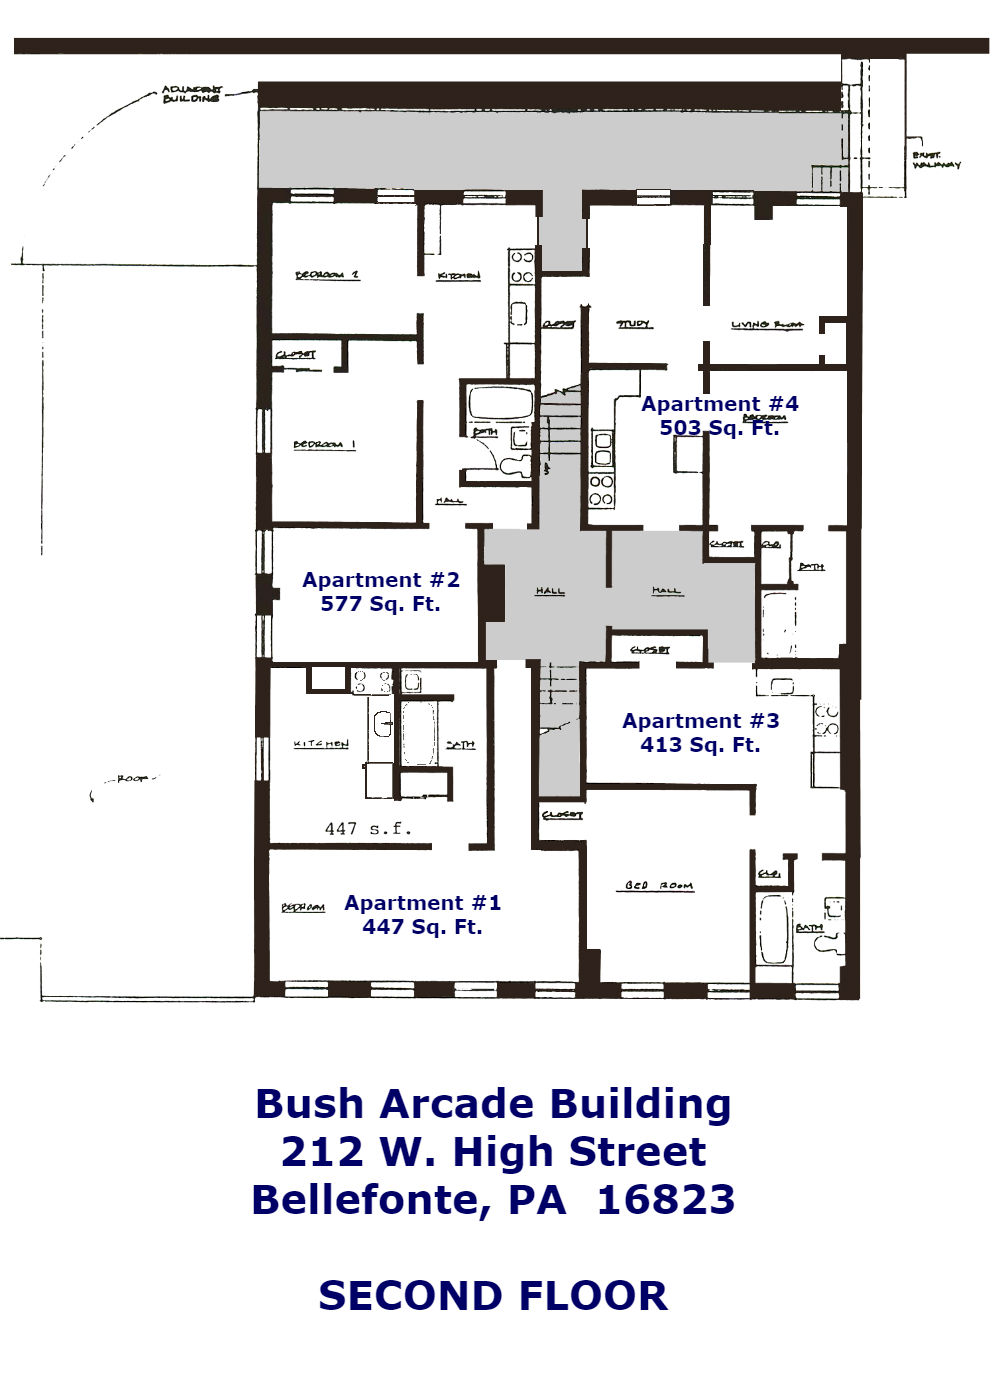 212 W. High Street 2nd Floor Plans